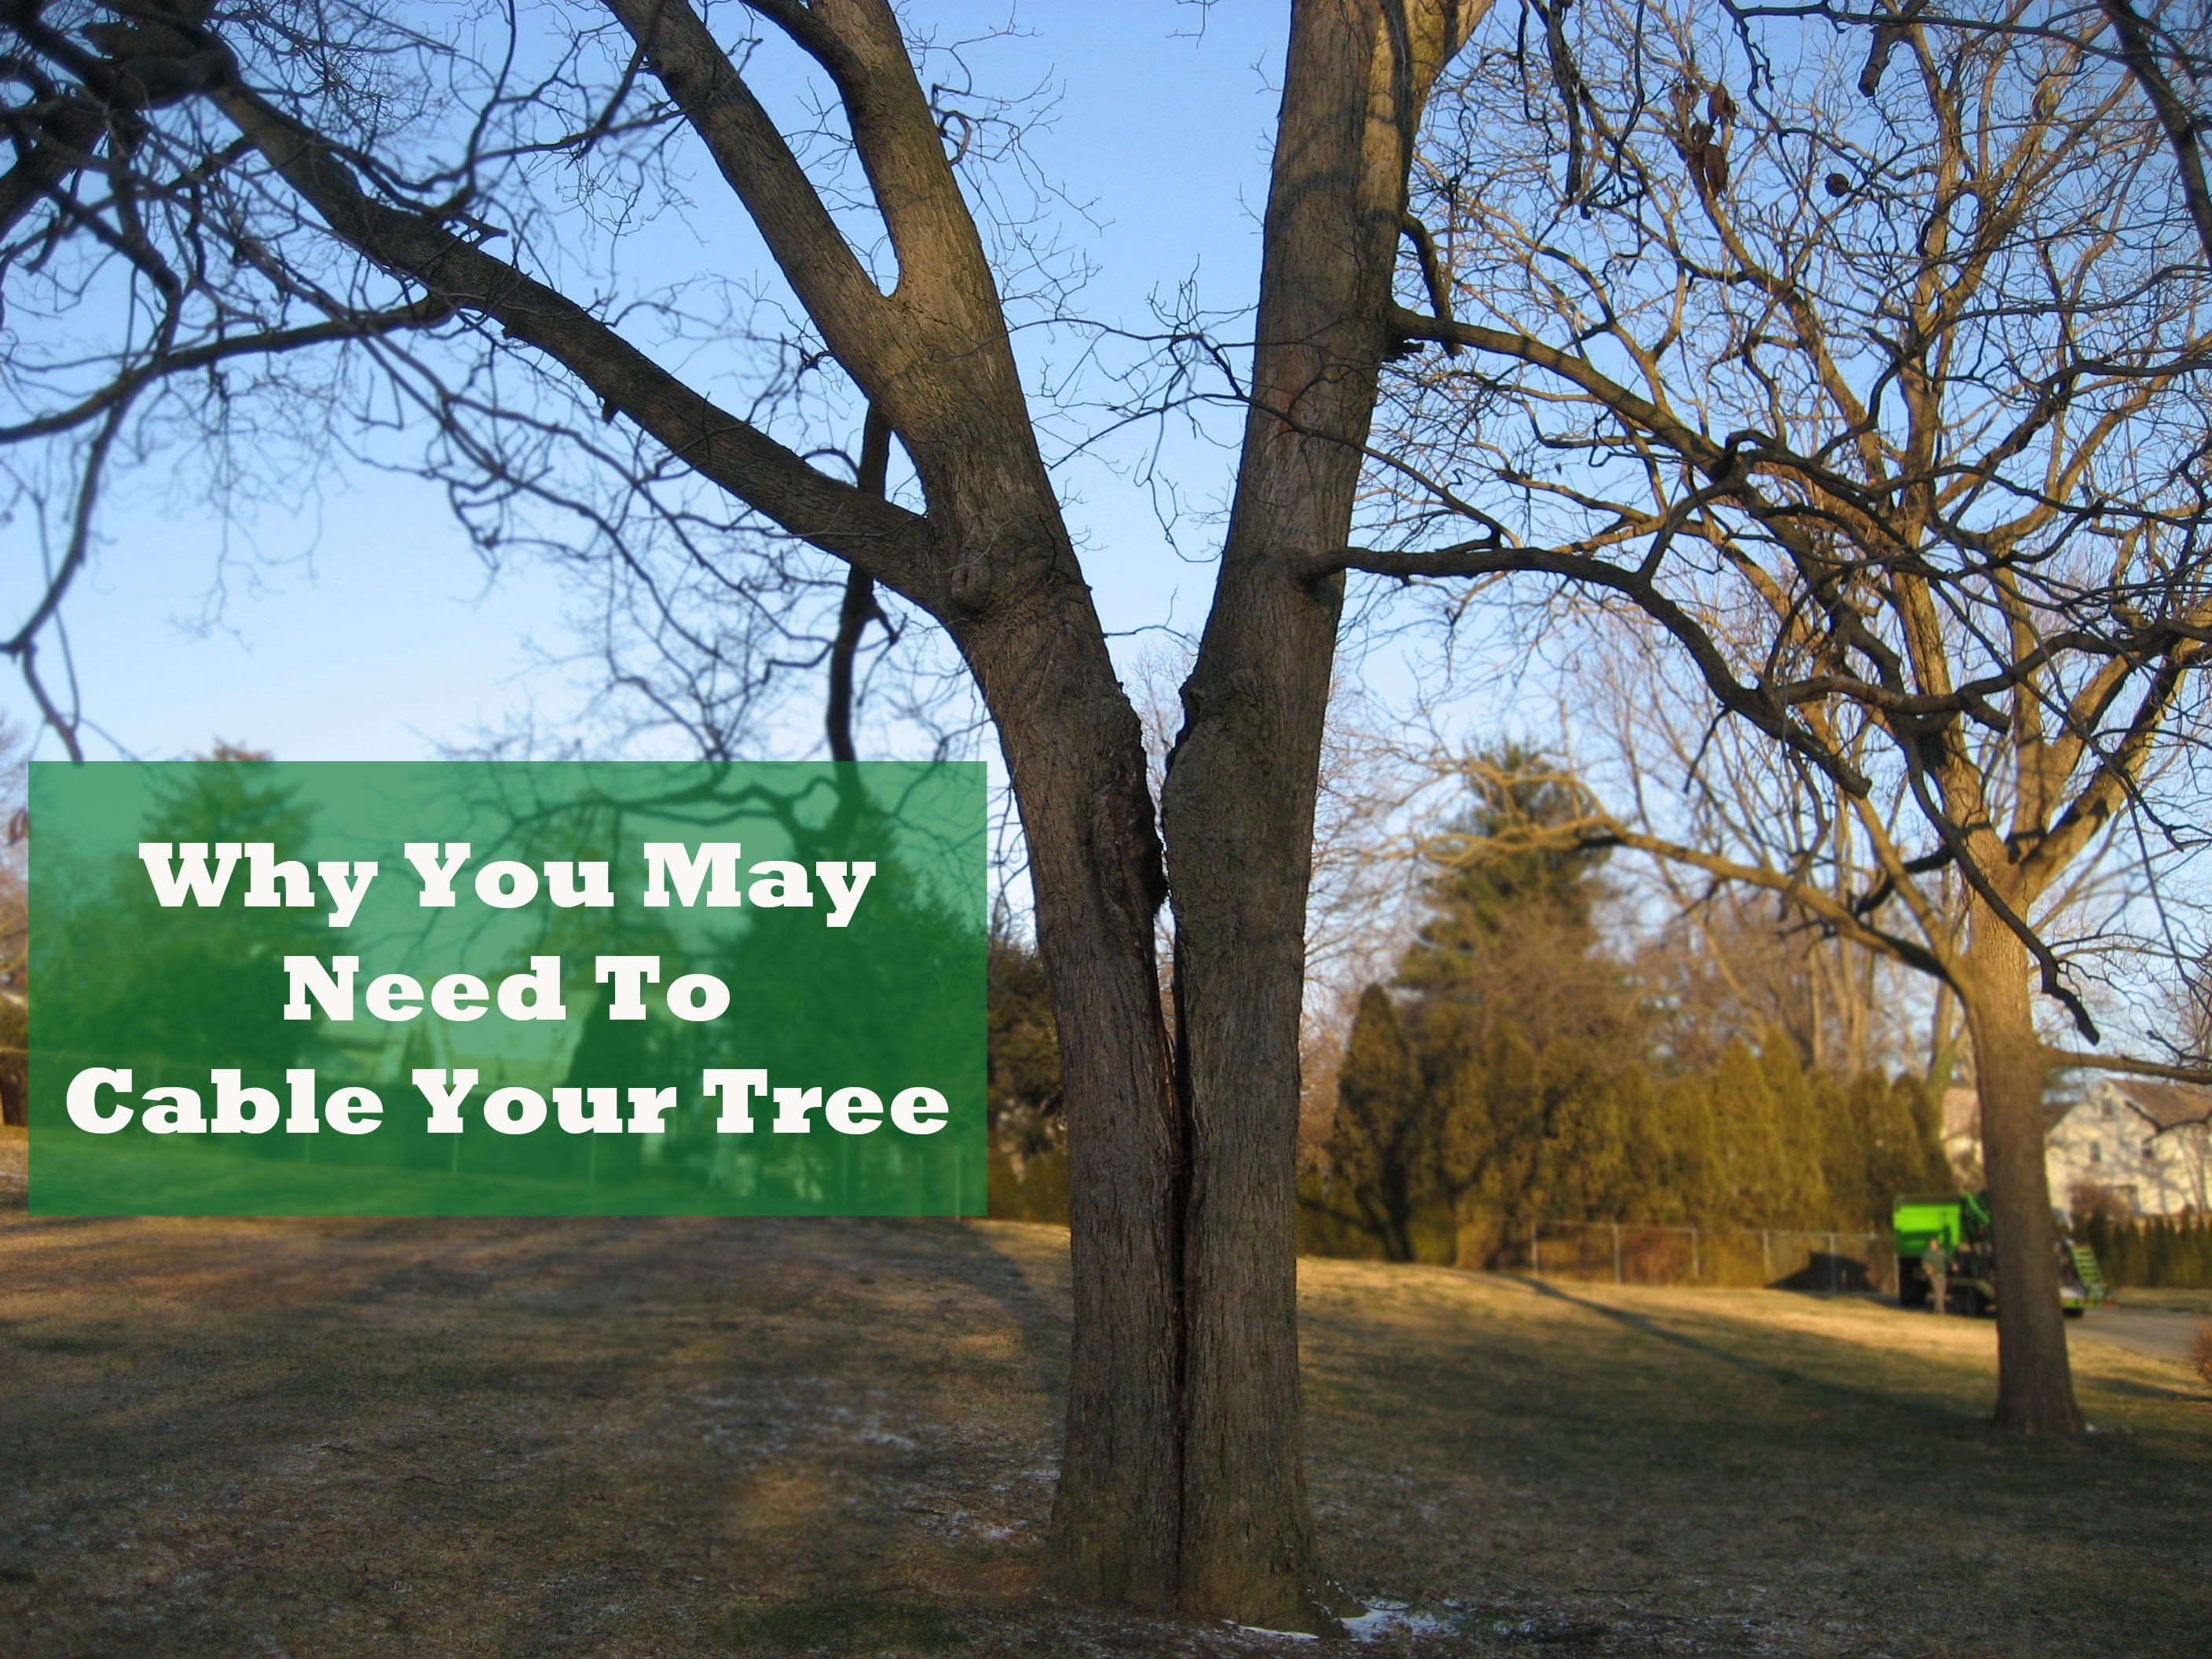 Why You May Need to Cable Your Tree.jpg